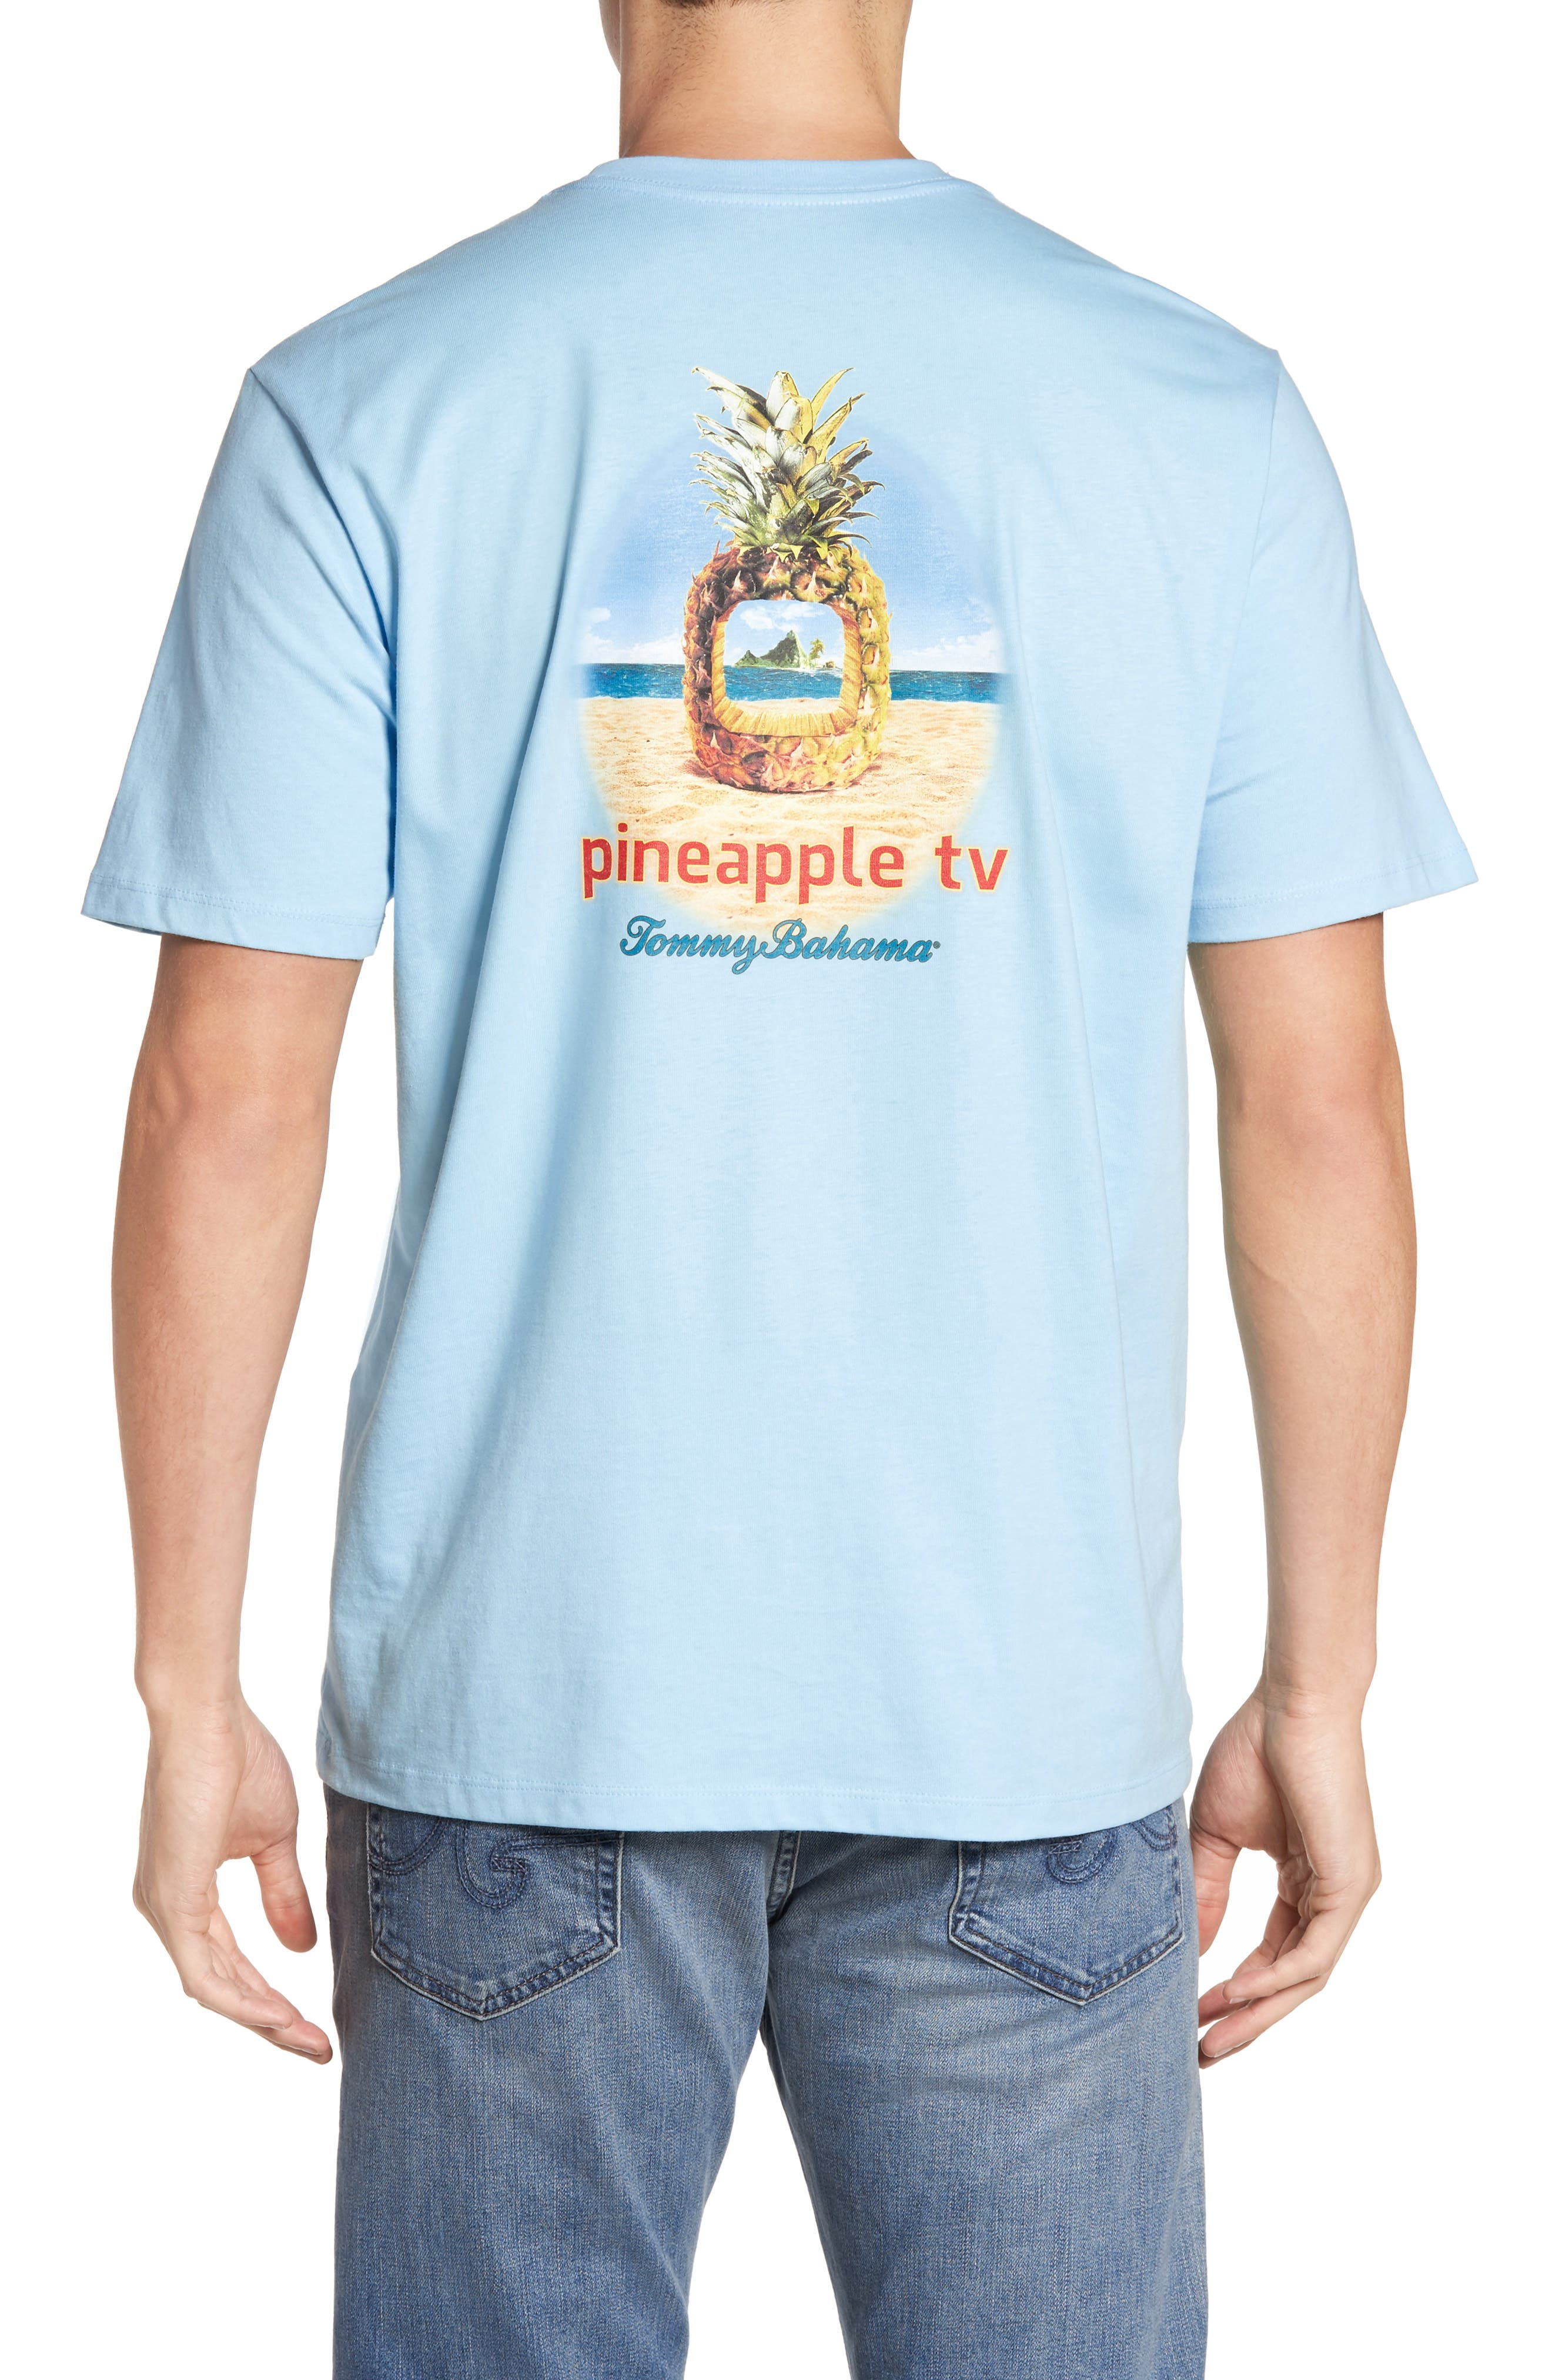 Main Image - Tommy Bahama Pineapple TV Graphic T-Shirt